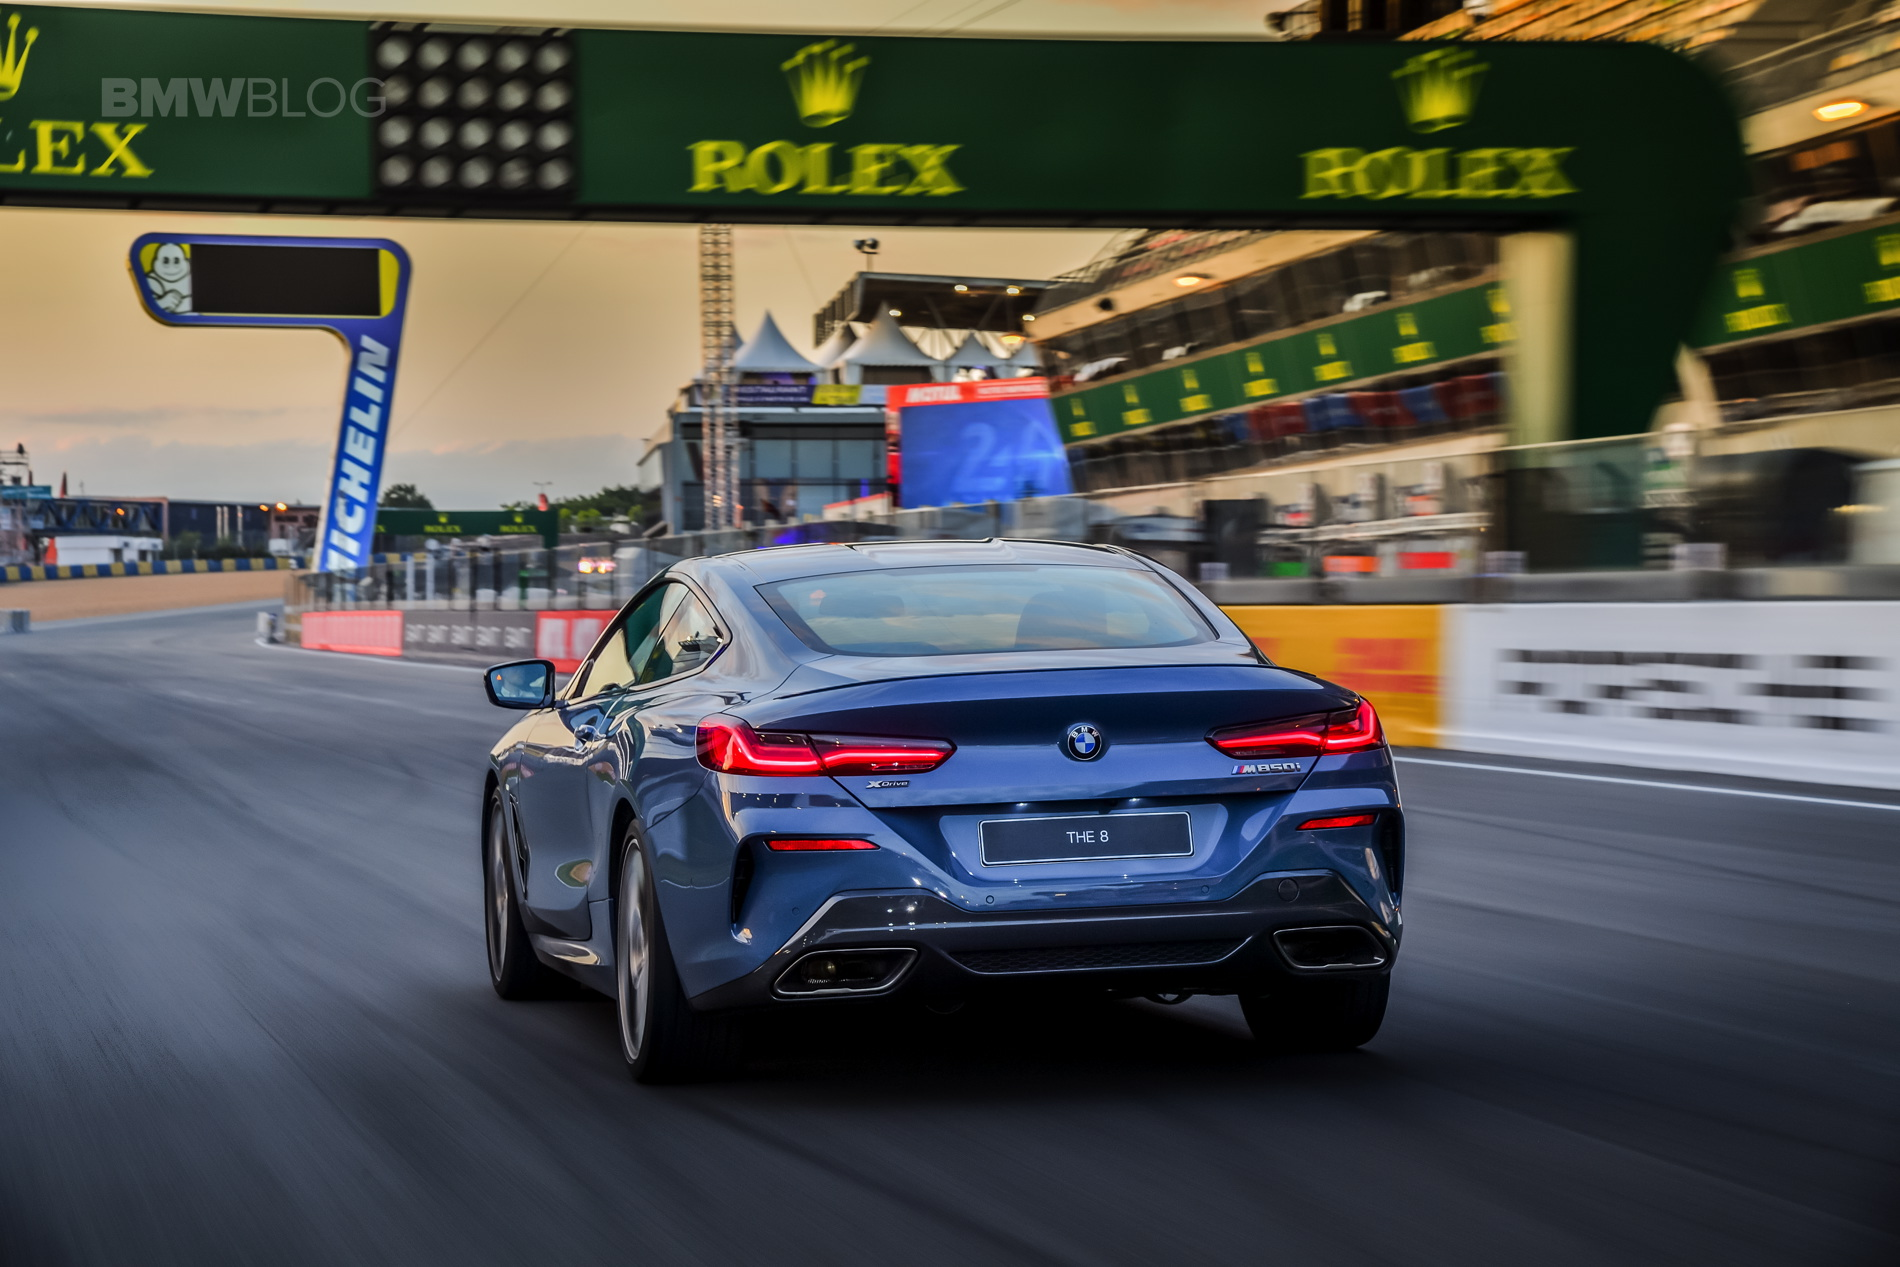 New Bmw M850i On Track At Le Mans Circuit